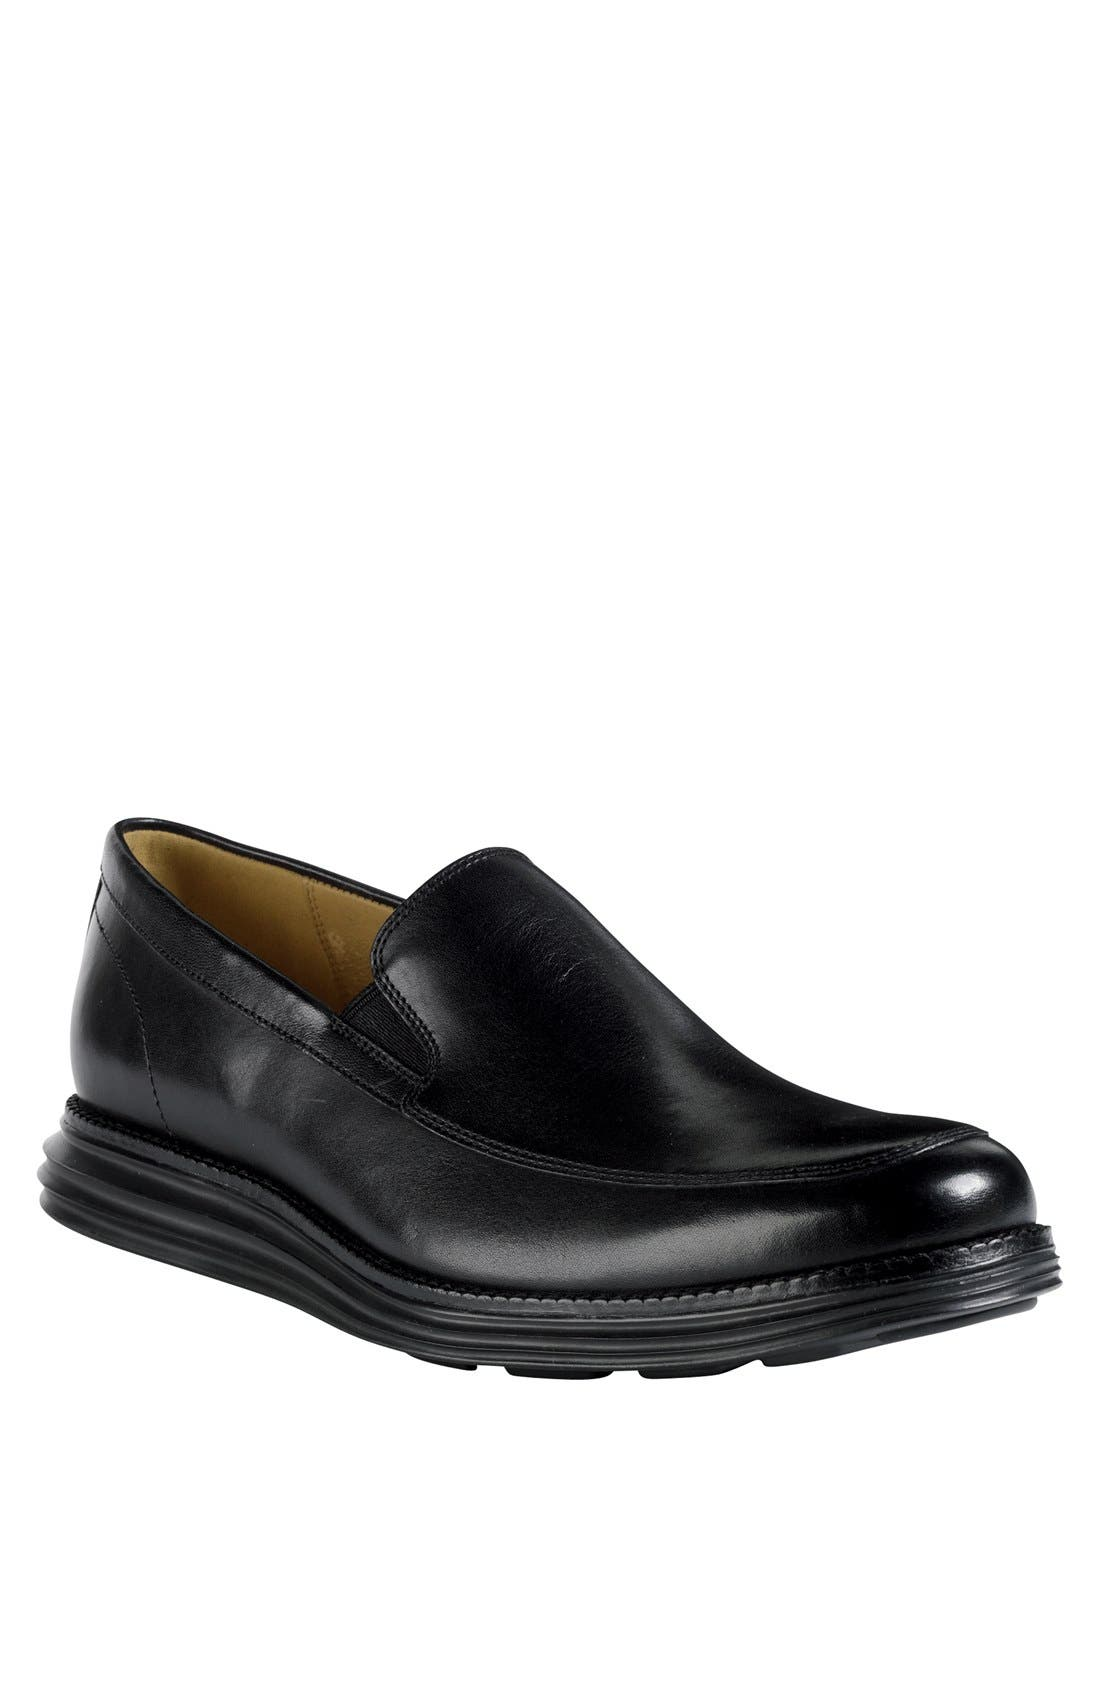 COLE HAAN 'LunarGrand' Apron Toe Loafer, Main, color, 001